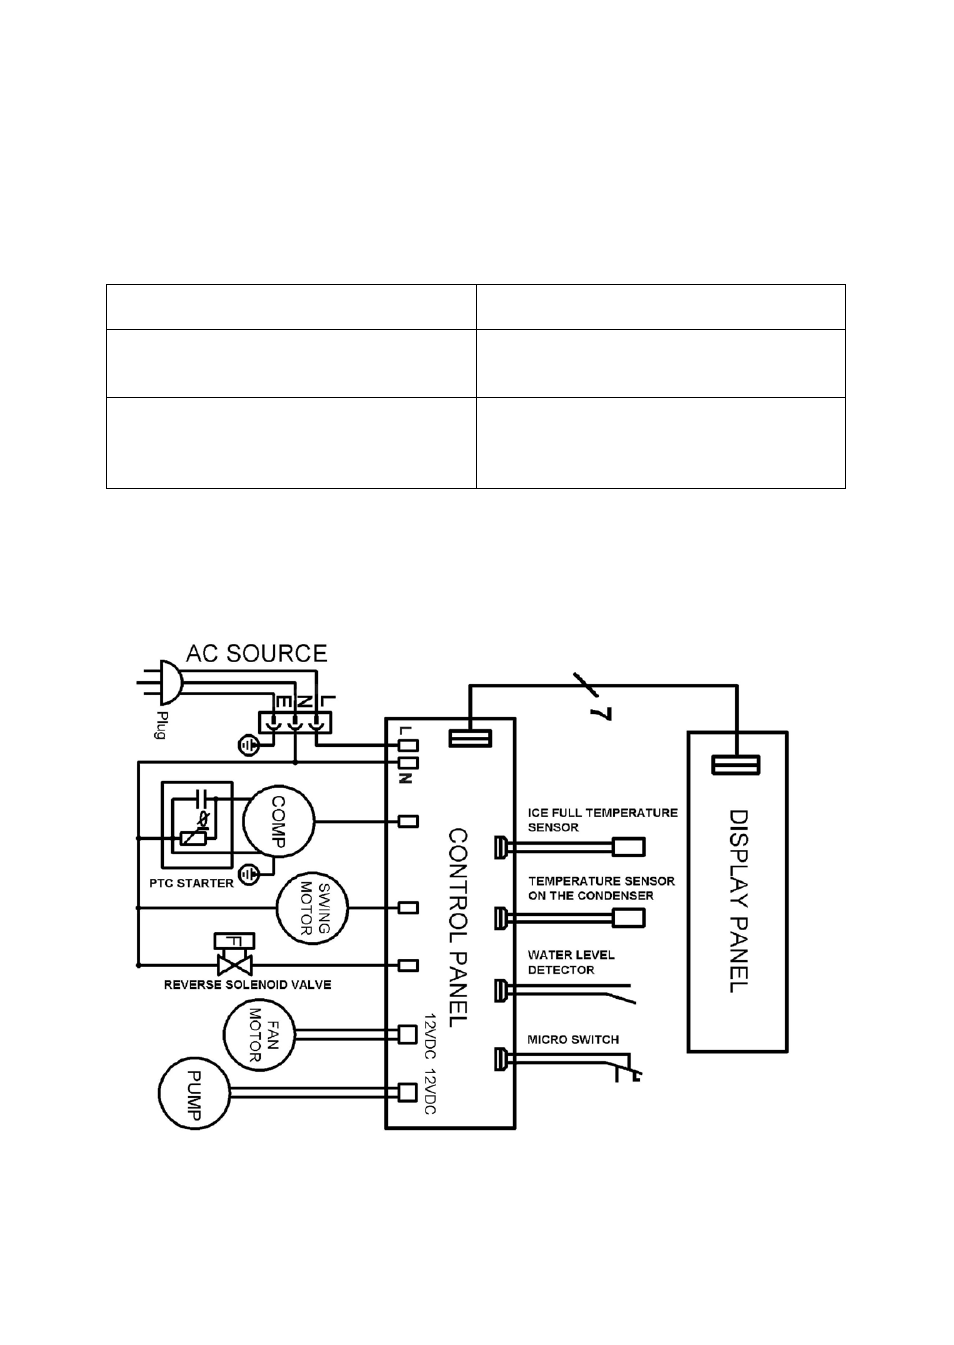 [SCHEMATICS_48DE]  Service for your ice maker, Wiring diagram | Avanti PIM 25 SS User Manual |  Page 13 / 22 | Original mode | Ice Maker Wiring Diagrams |  | Manuals Directory